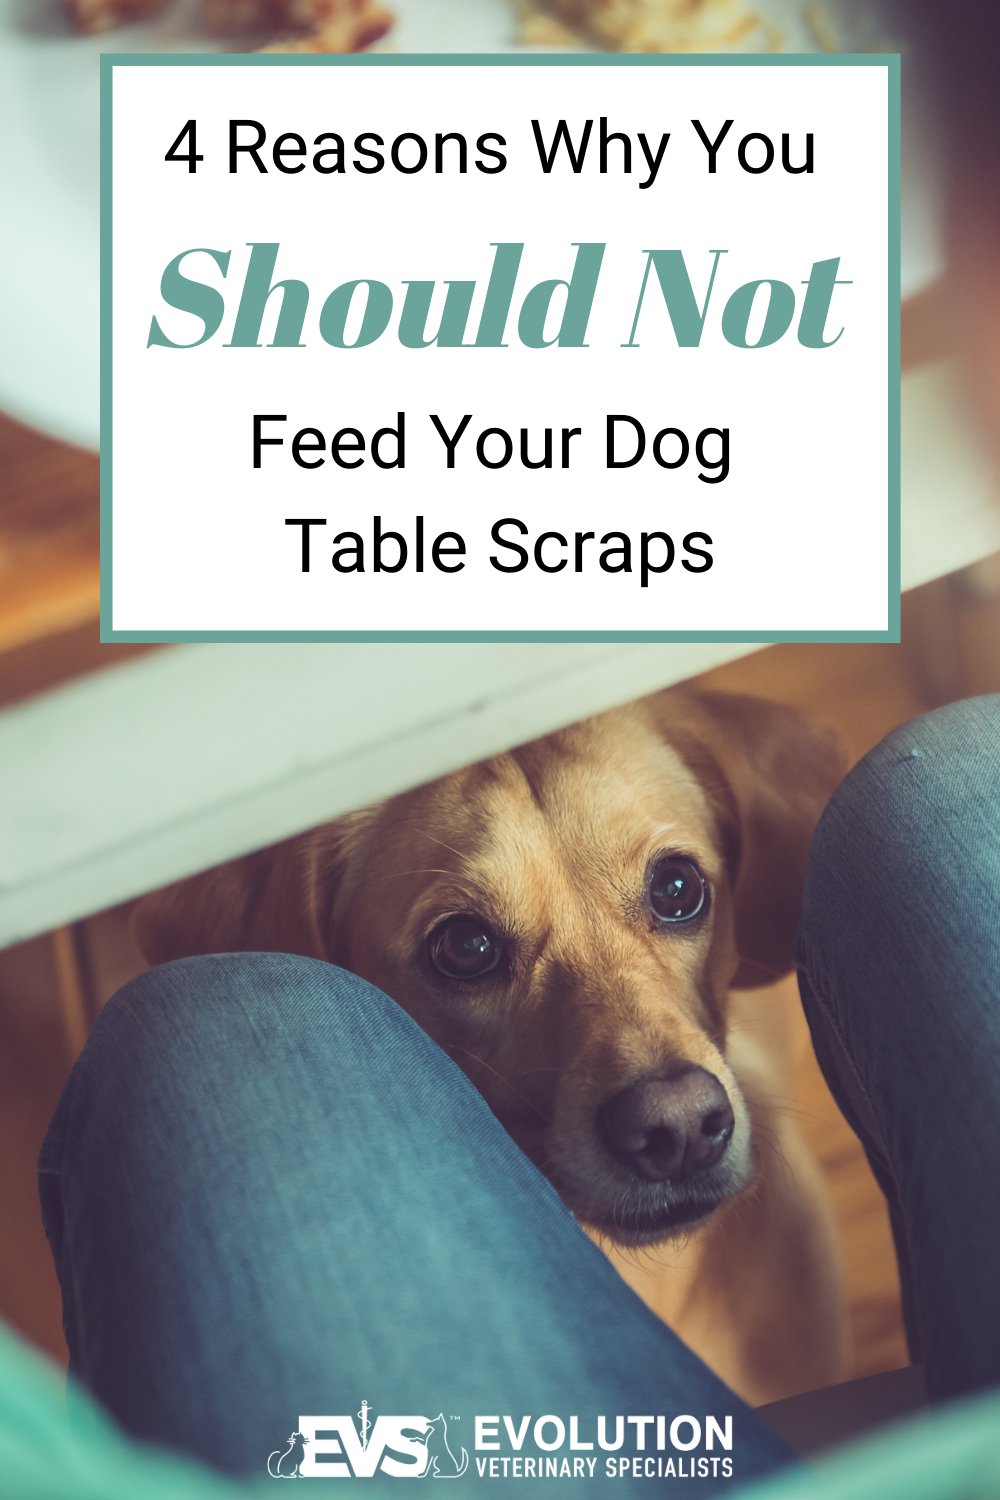 4 reasons why you should not feed your dog table scraps